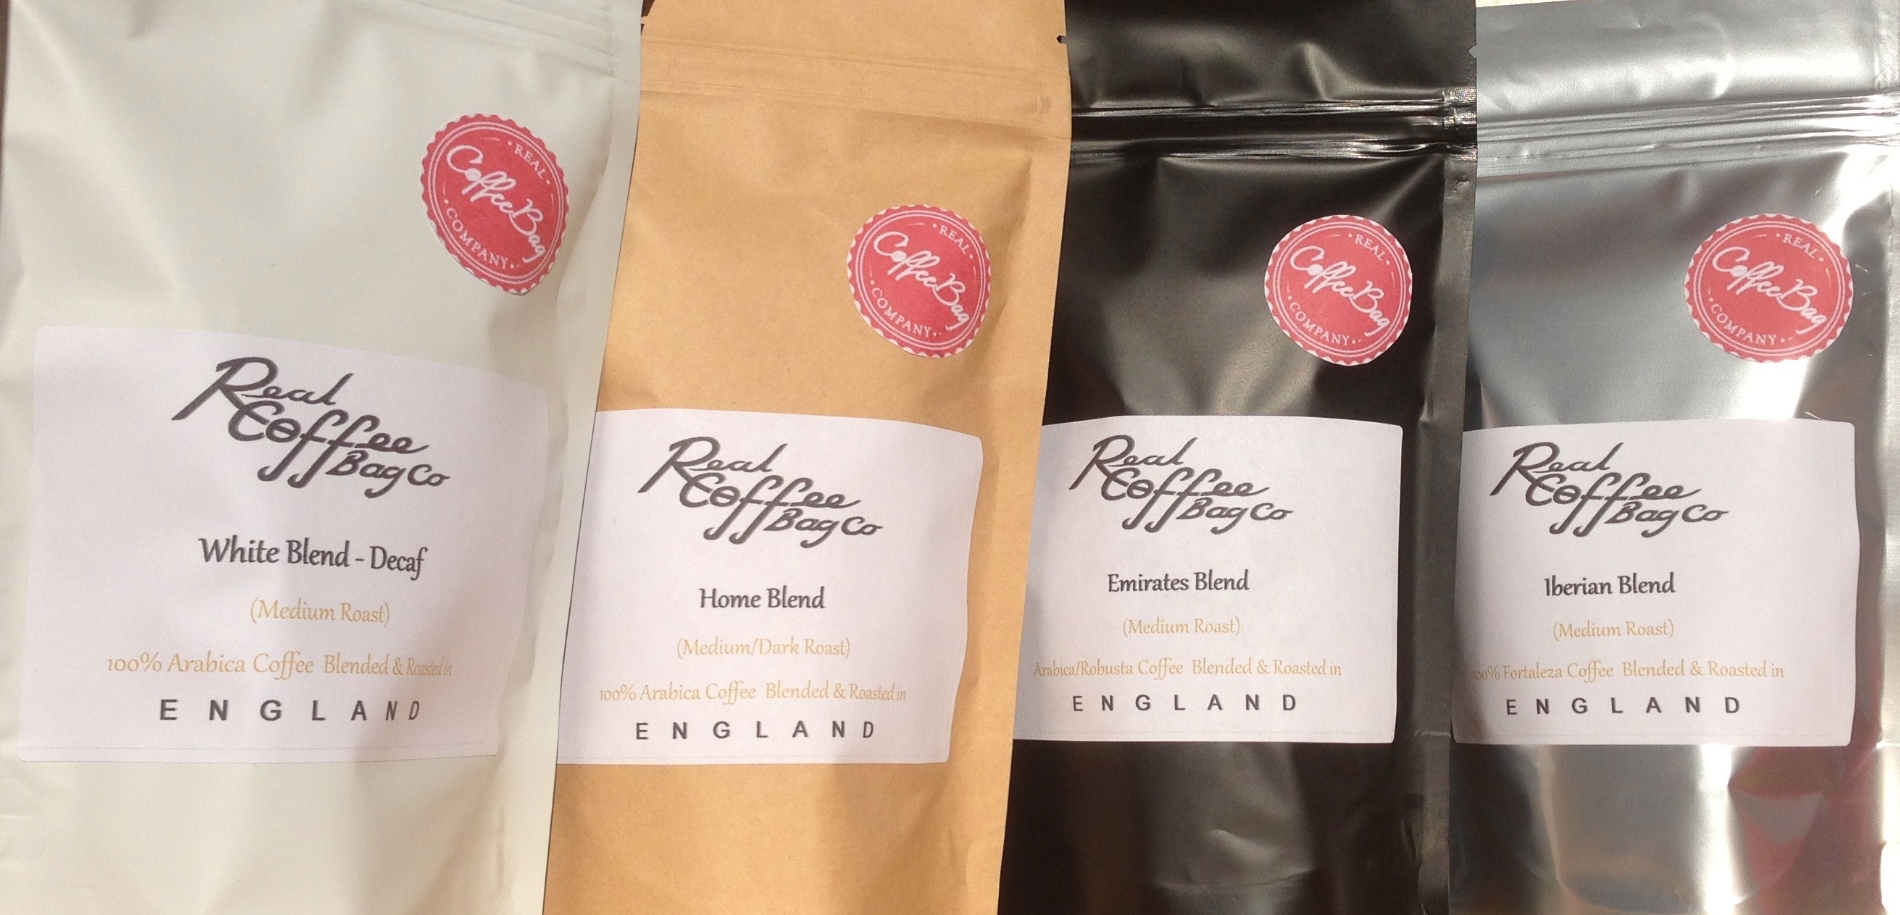 The Real Coffee Bag Company: Reinventing the tea bag by giving it a java makeover